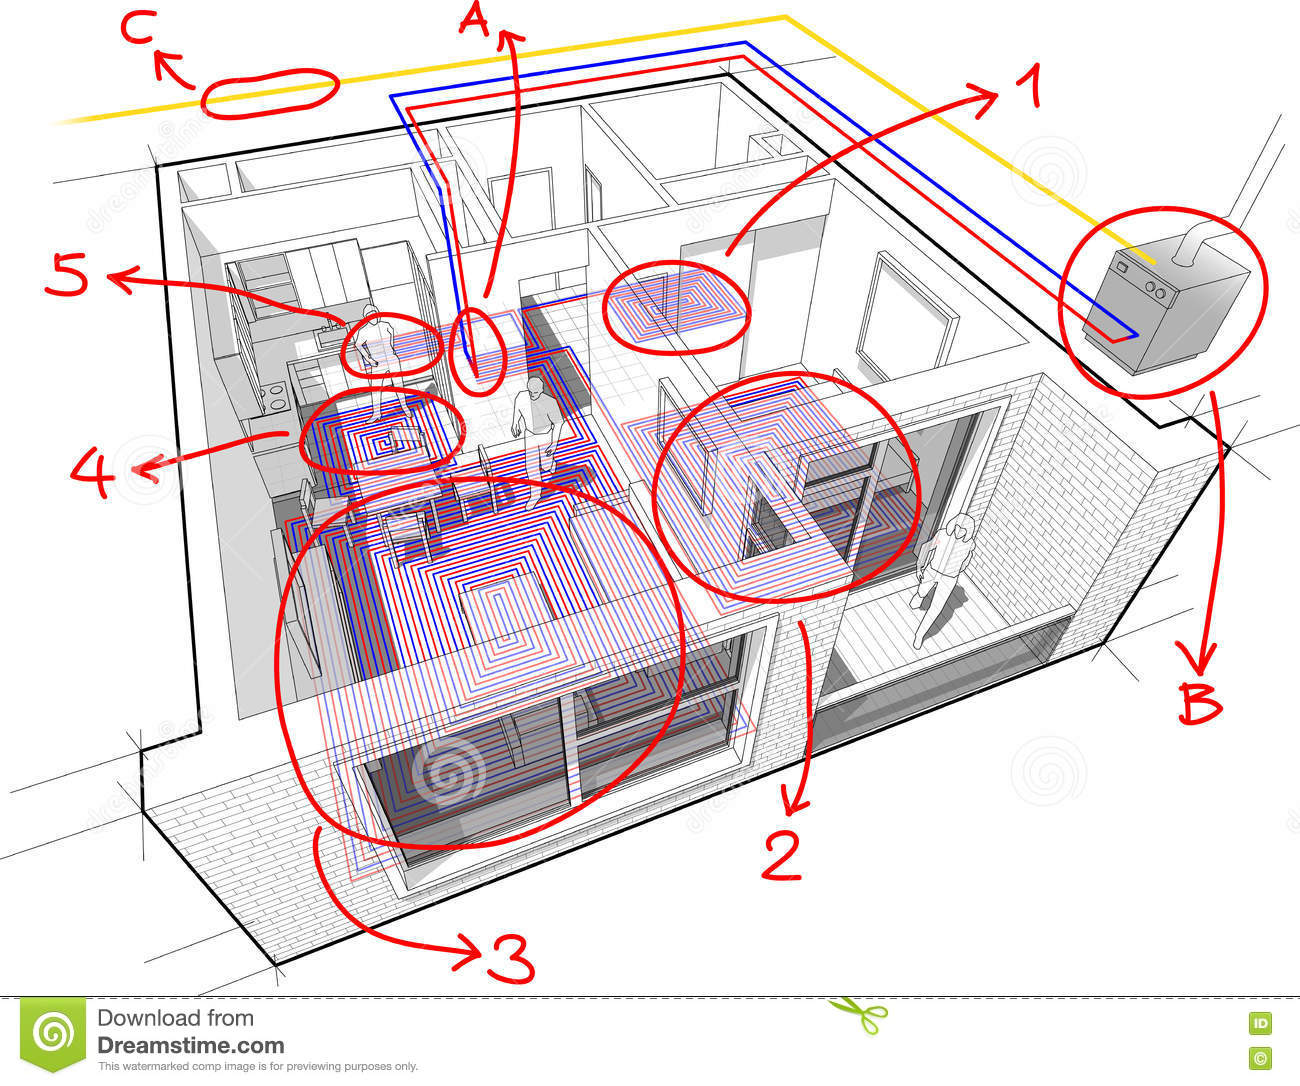 hight resolution of apartment diagram with underfloor heating and gas water boiler and hand drawn notes